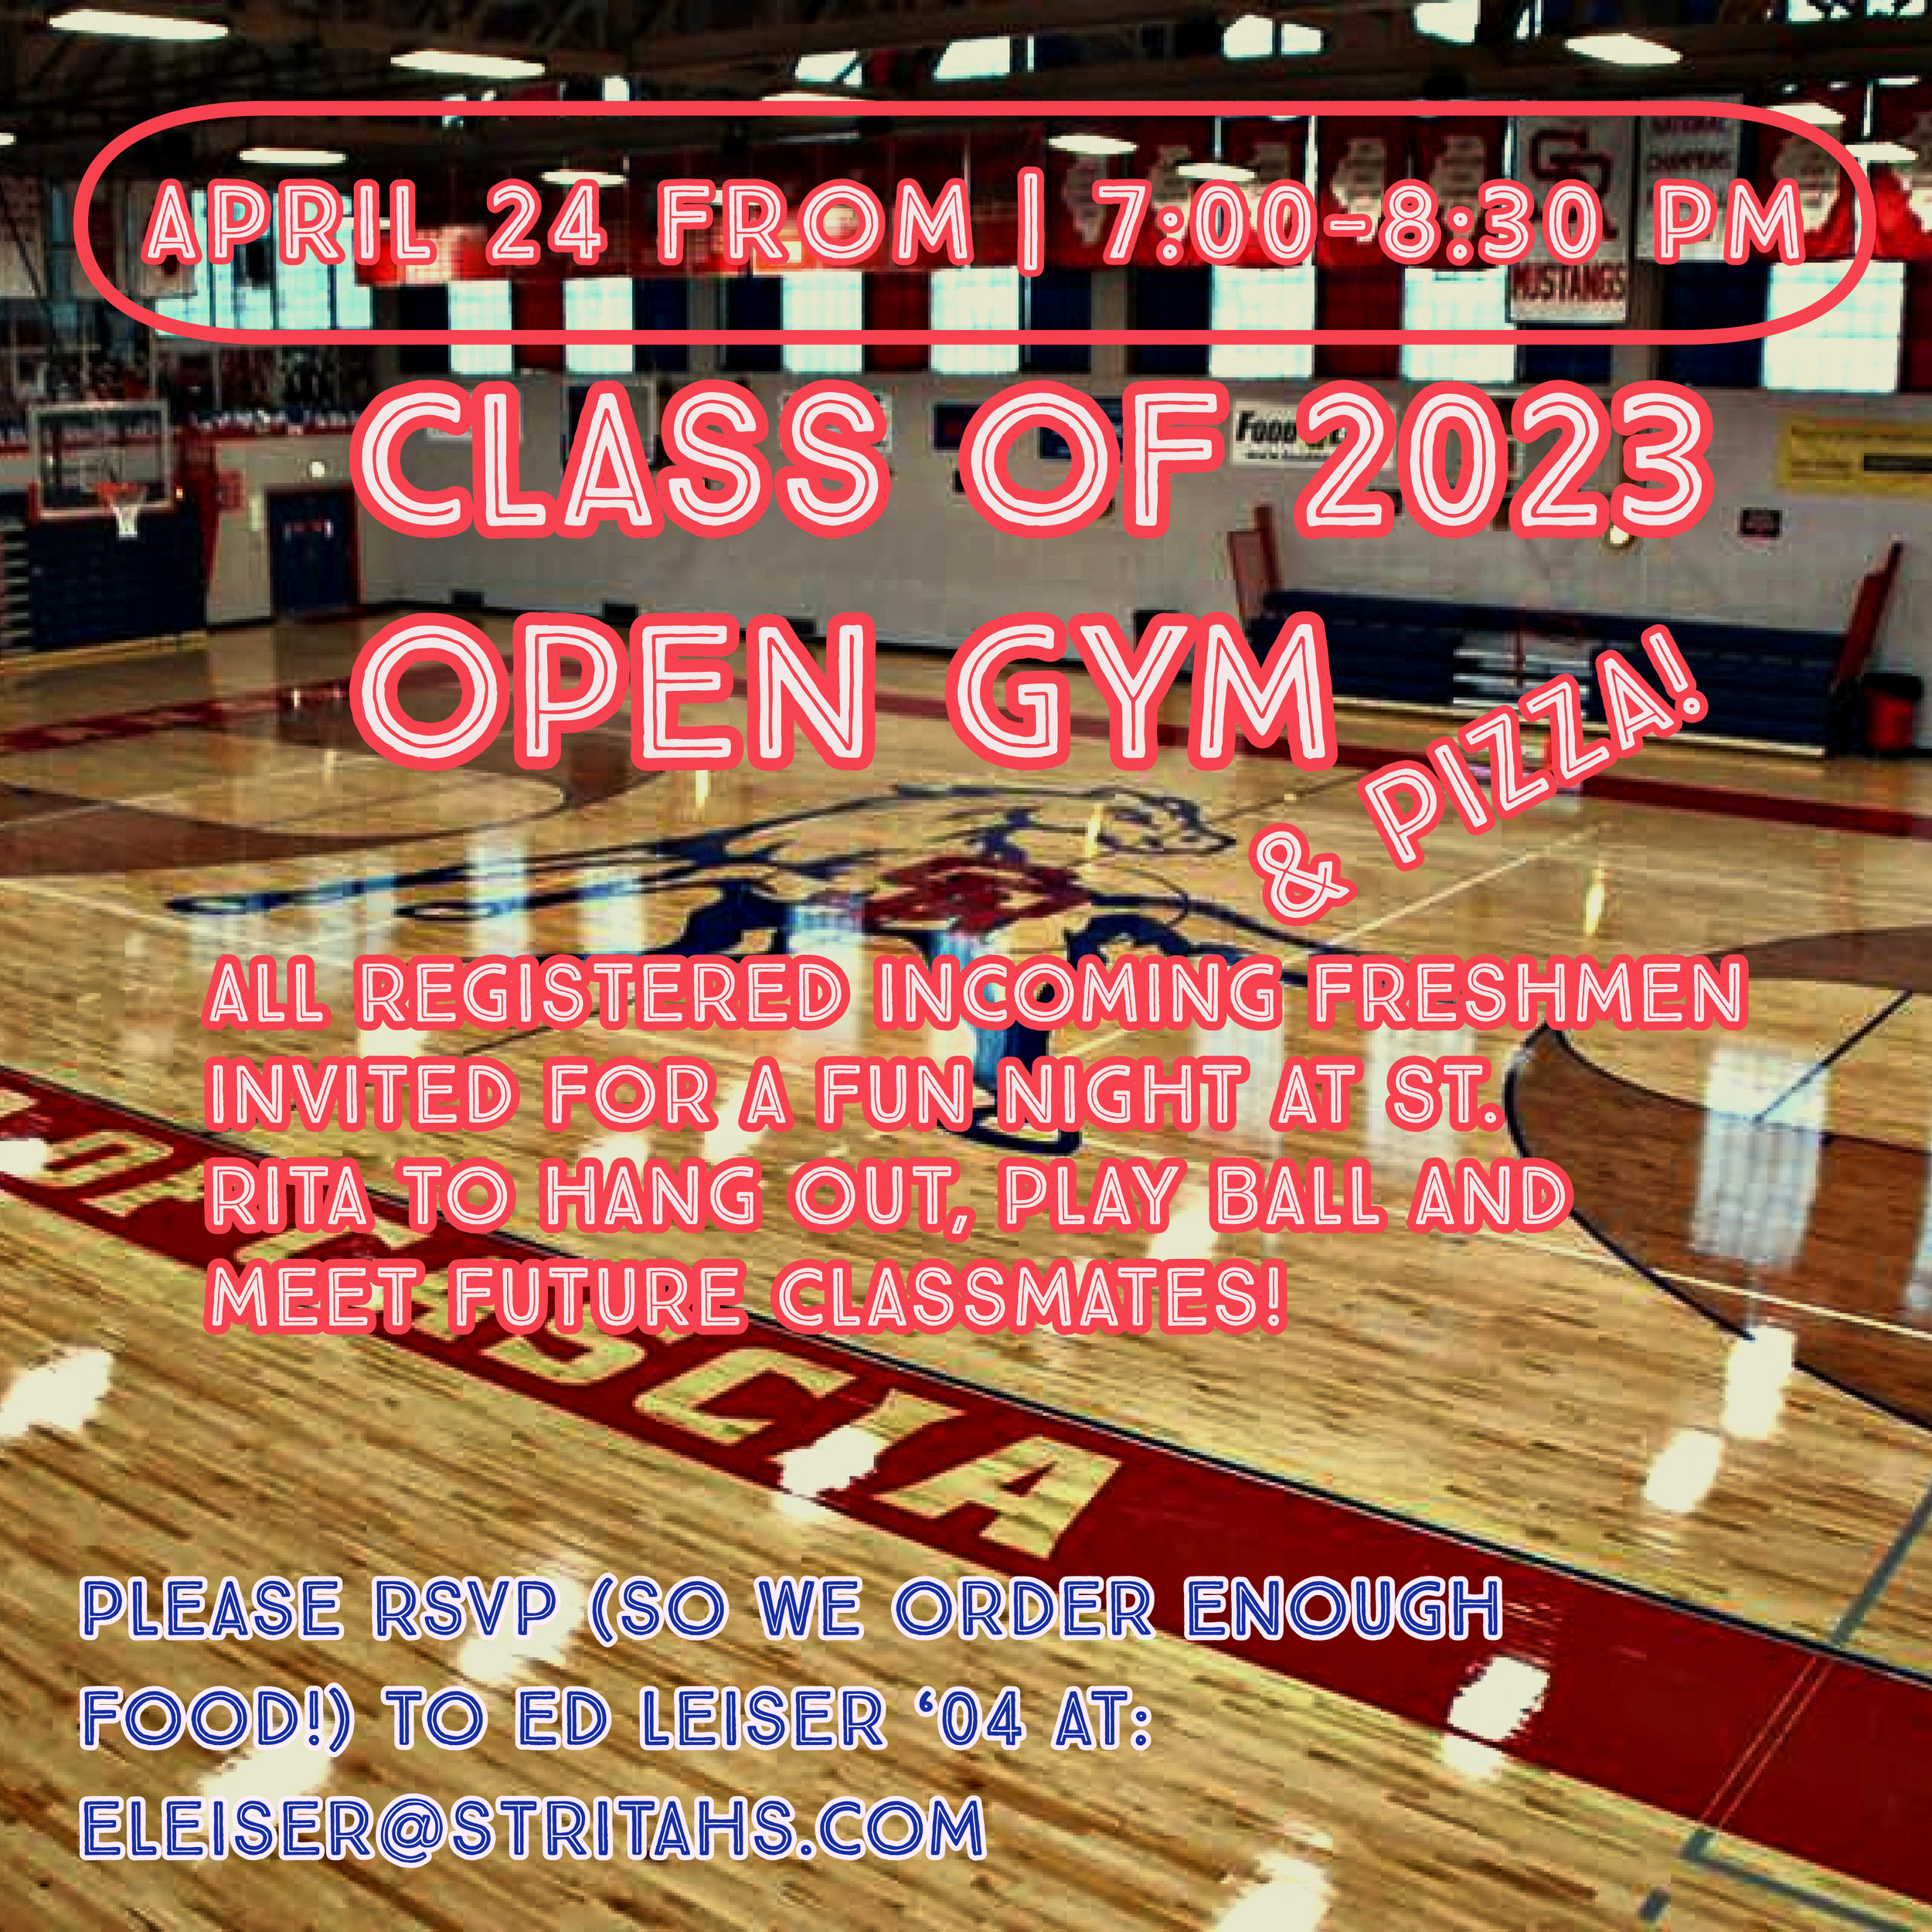 flyer and promo for open gym and pizza class of 2023.jpg